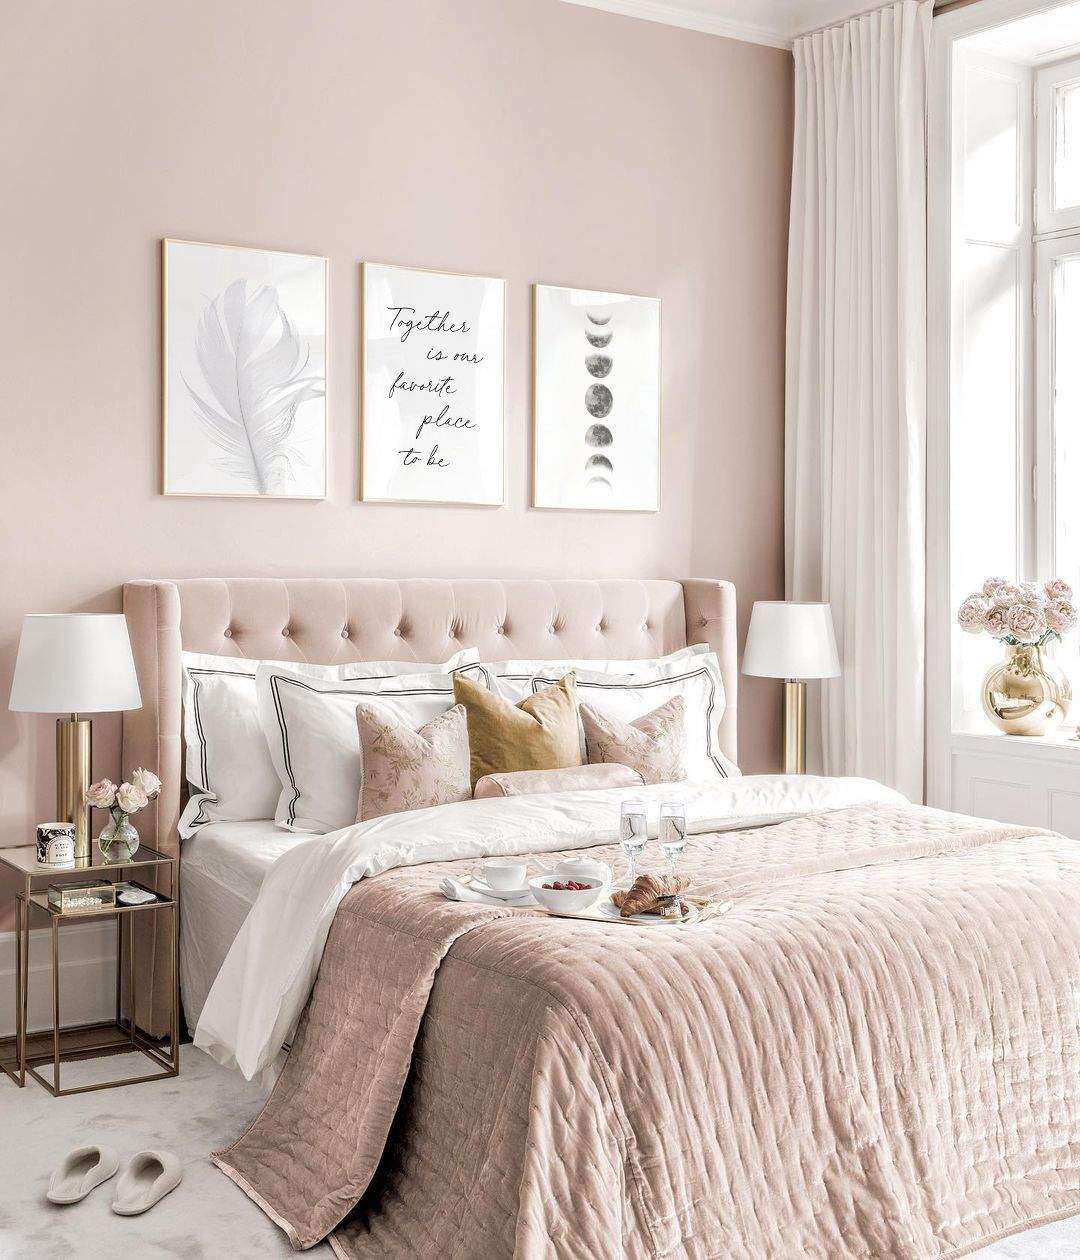 Above Bed Decor High Quality Set Of 3 Pieces Wall Art Feather Wall Art Sacred Moon Phases Print Above Bed Art Together Bedroom Decor Classy Bedroom Pink Bedroom Decor Above Bed Decor Newest pastel pink bedroom